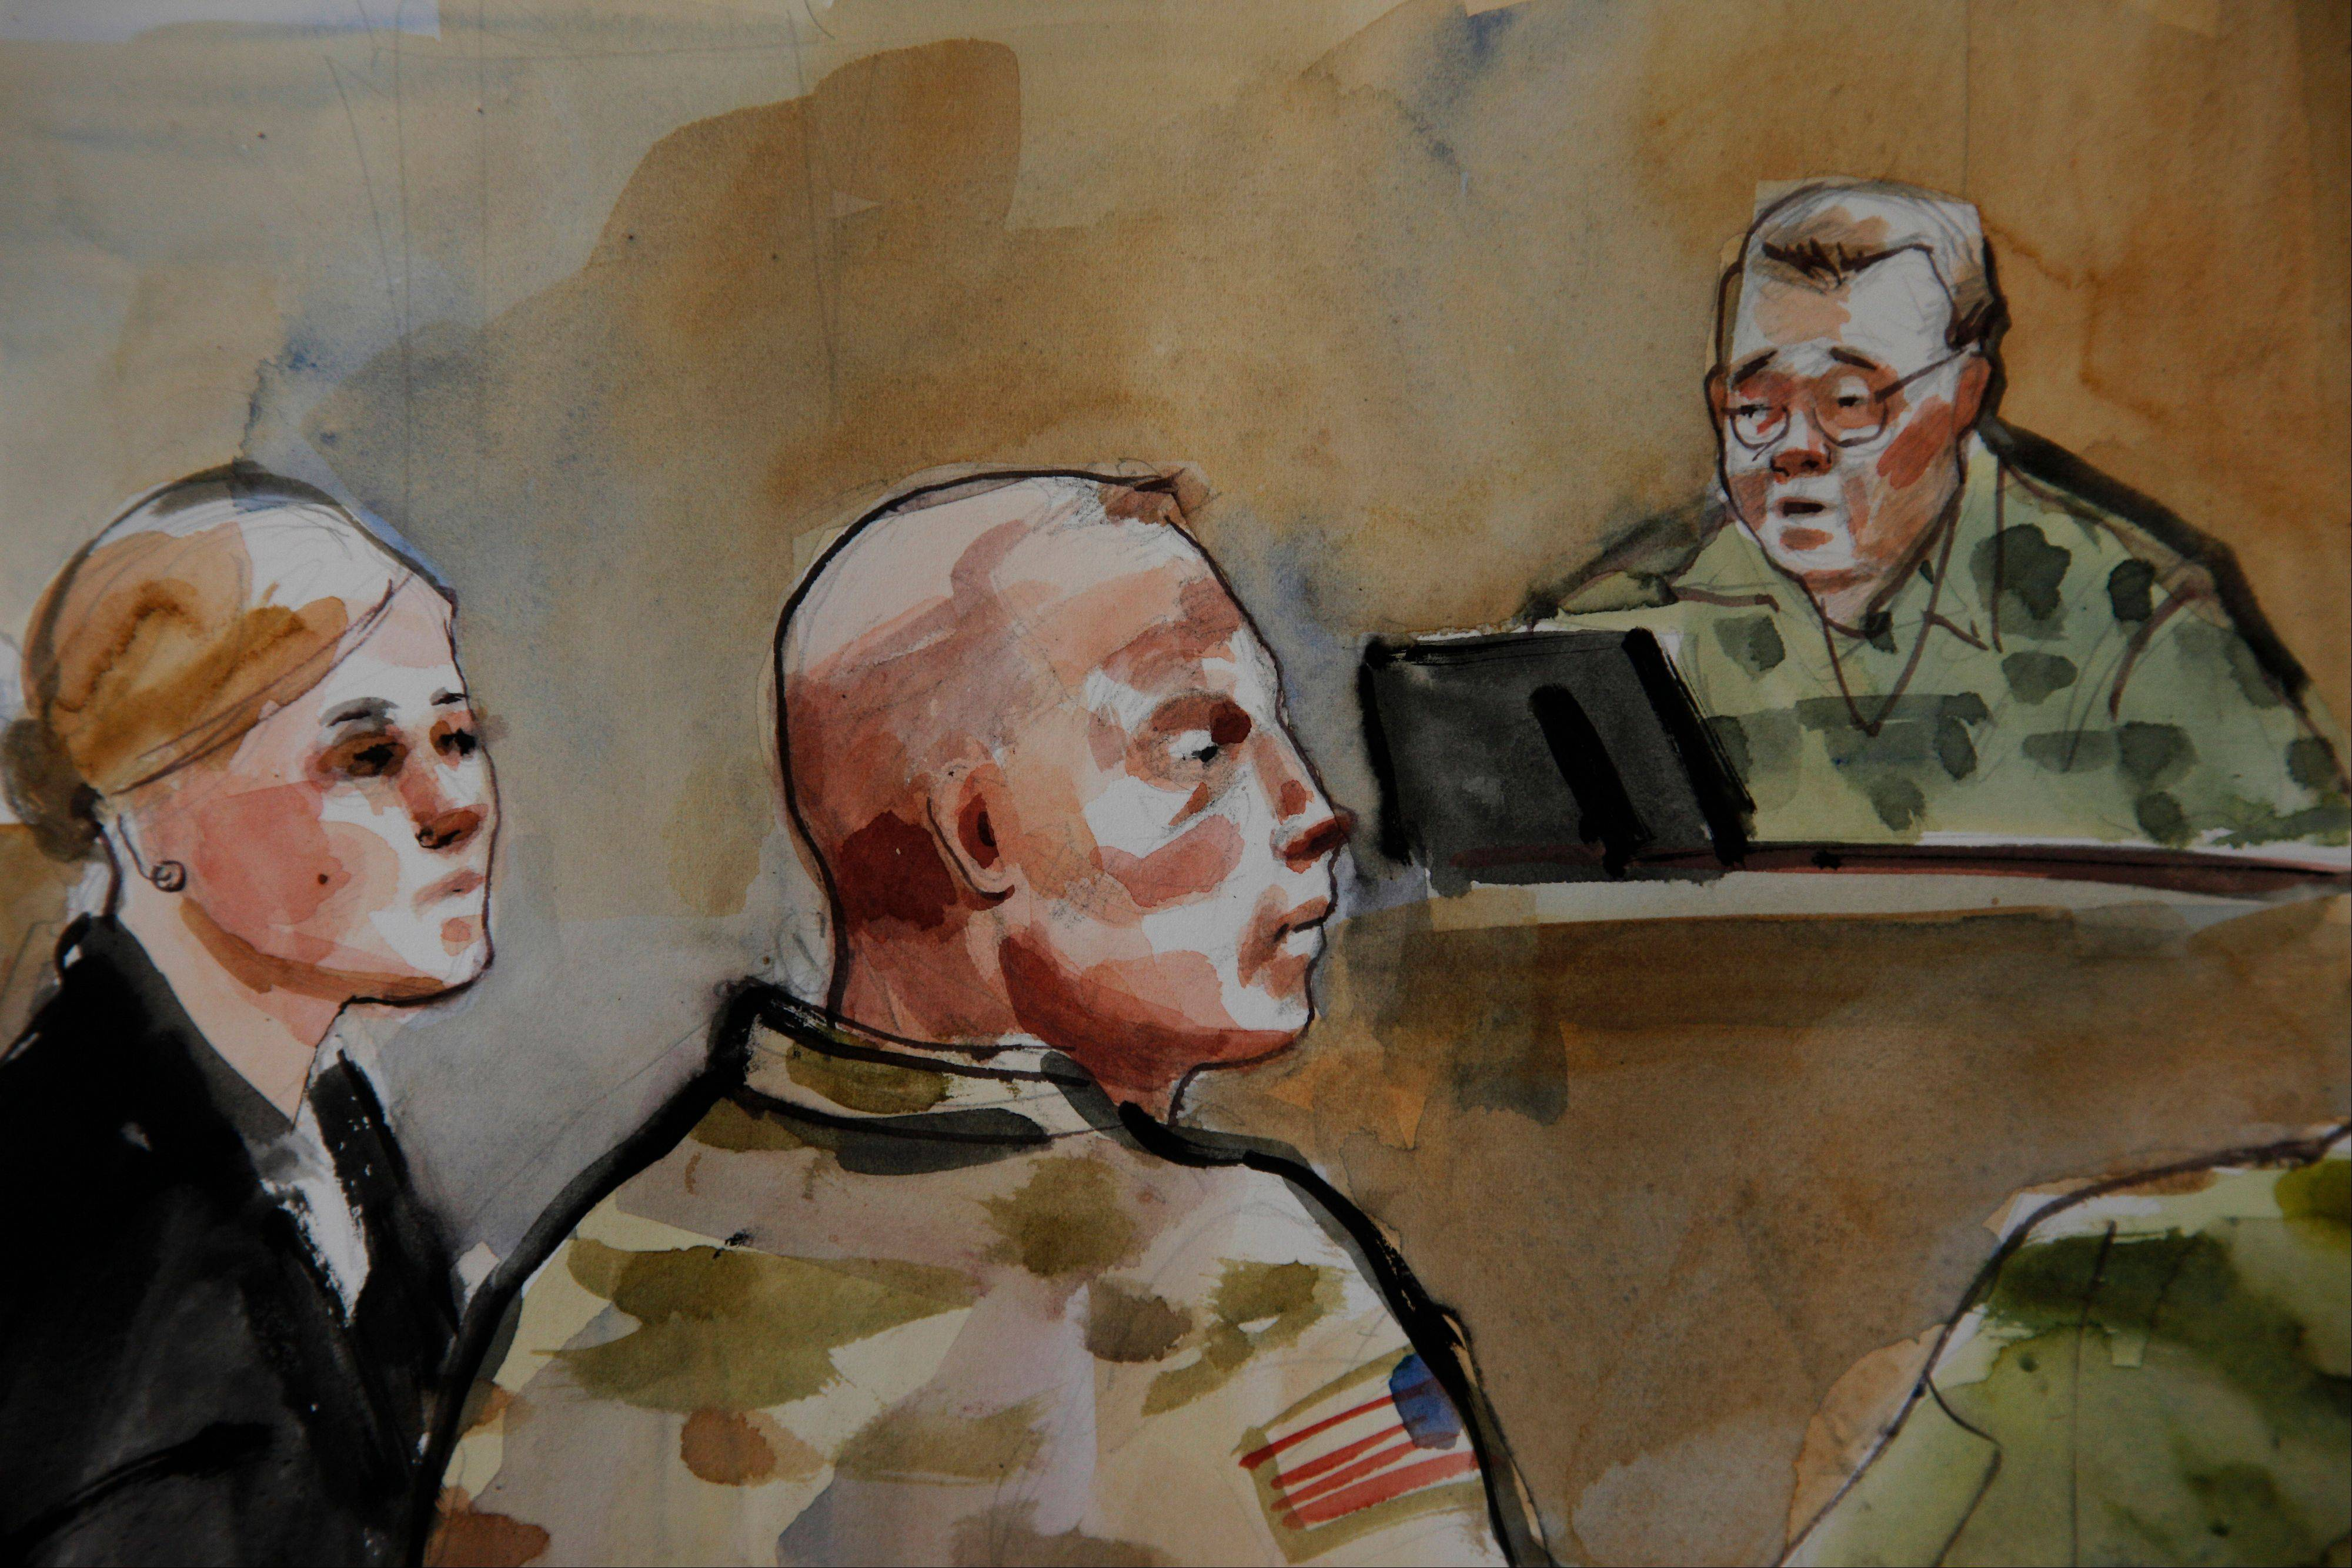 U.S. Army Staff Sgt. Robert Bales, center, is shown Monday, Nov. 5, during a preliminary hearing in a military courtroom at Joint Base Lewis McChord in Washington state. An Afghan National Army guard who reported seeing a U.S. soldier outside a remote base the night 16 civilians were massacred in March said the man did not stop even after being asked three times to do so. The guard, named Nematullah, testified by live video from Kandahar, Afghanistan, on Friday Nov. 9, during an overnight session for a hearing in the case against Staff Sgt. Robert Bales.